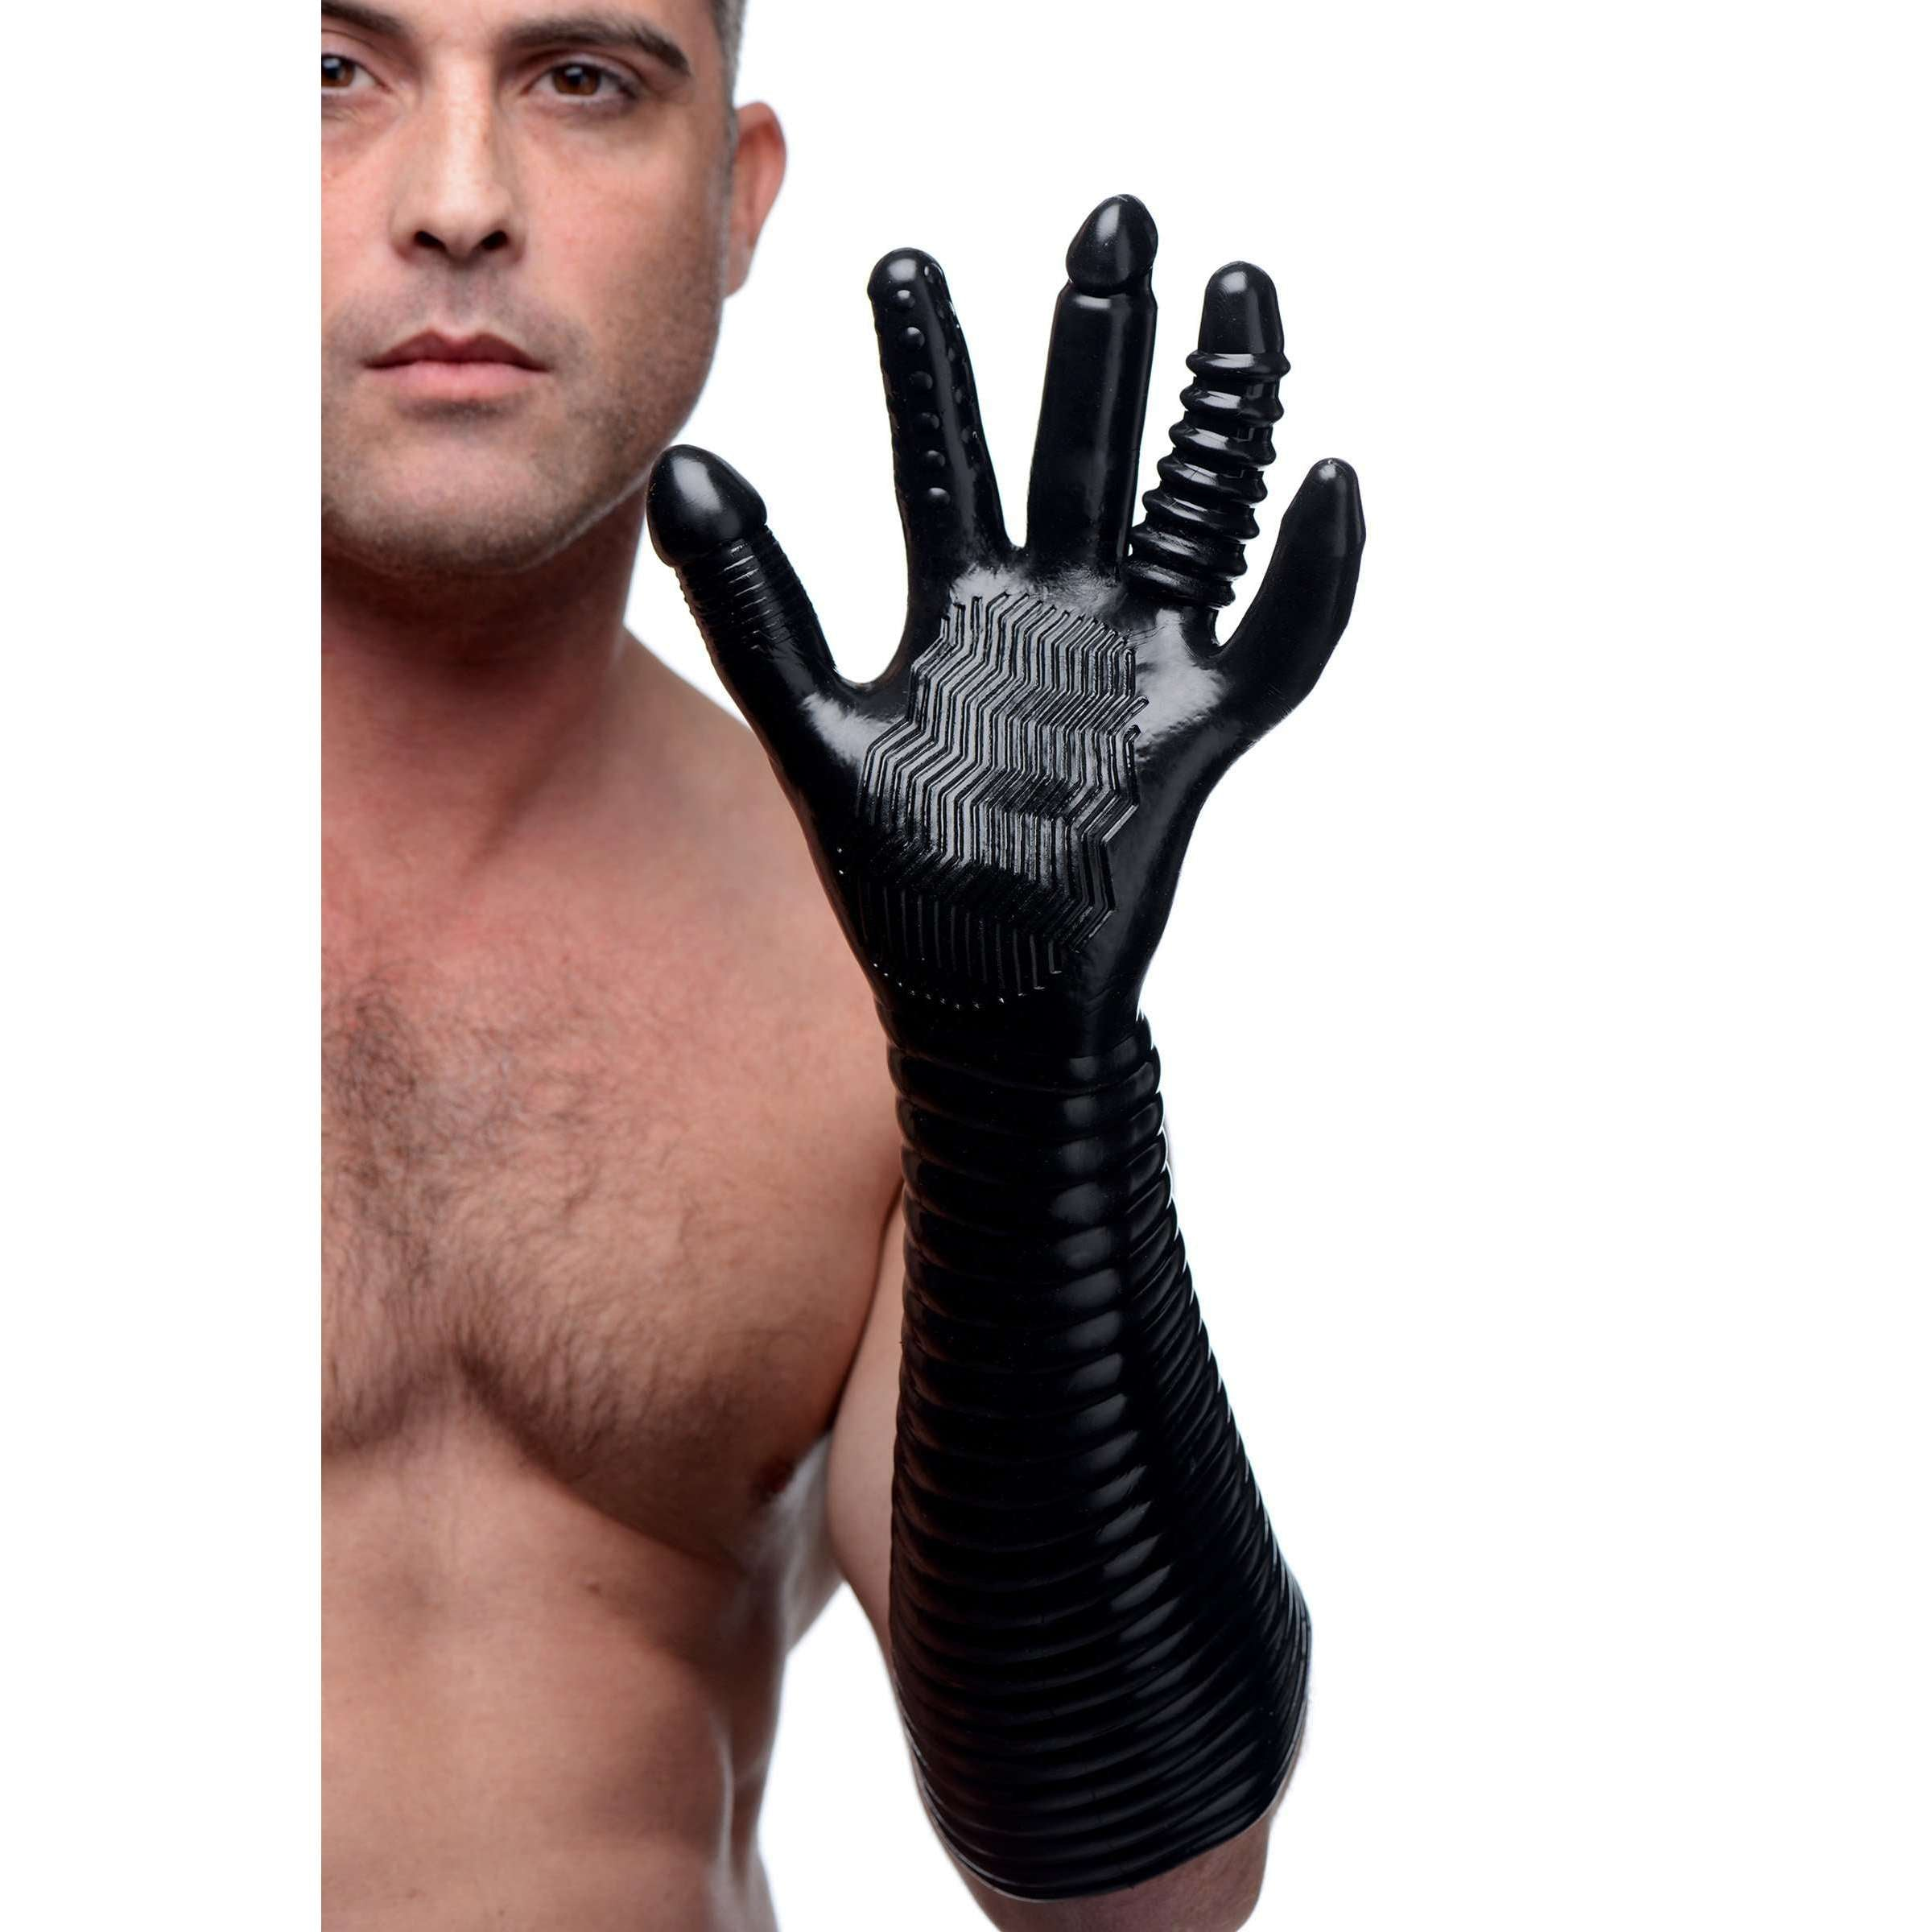 Pleasure Fister Textured Fisting Glove